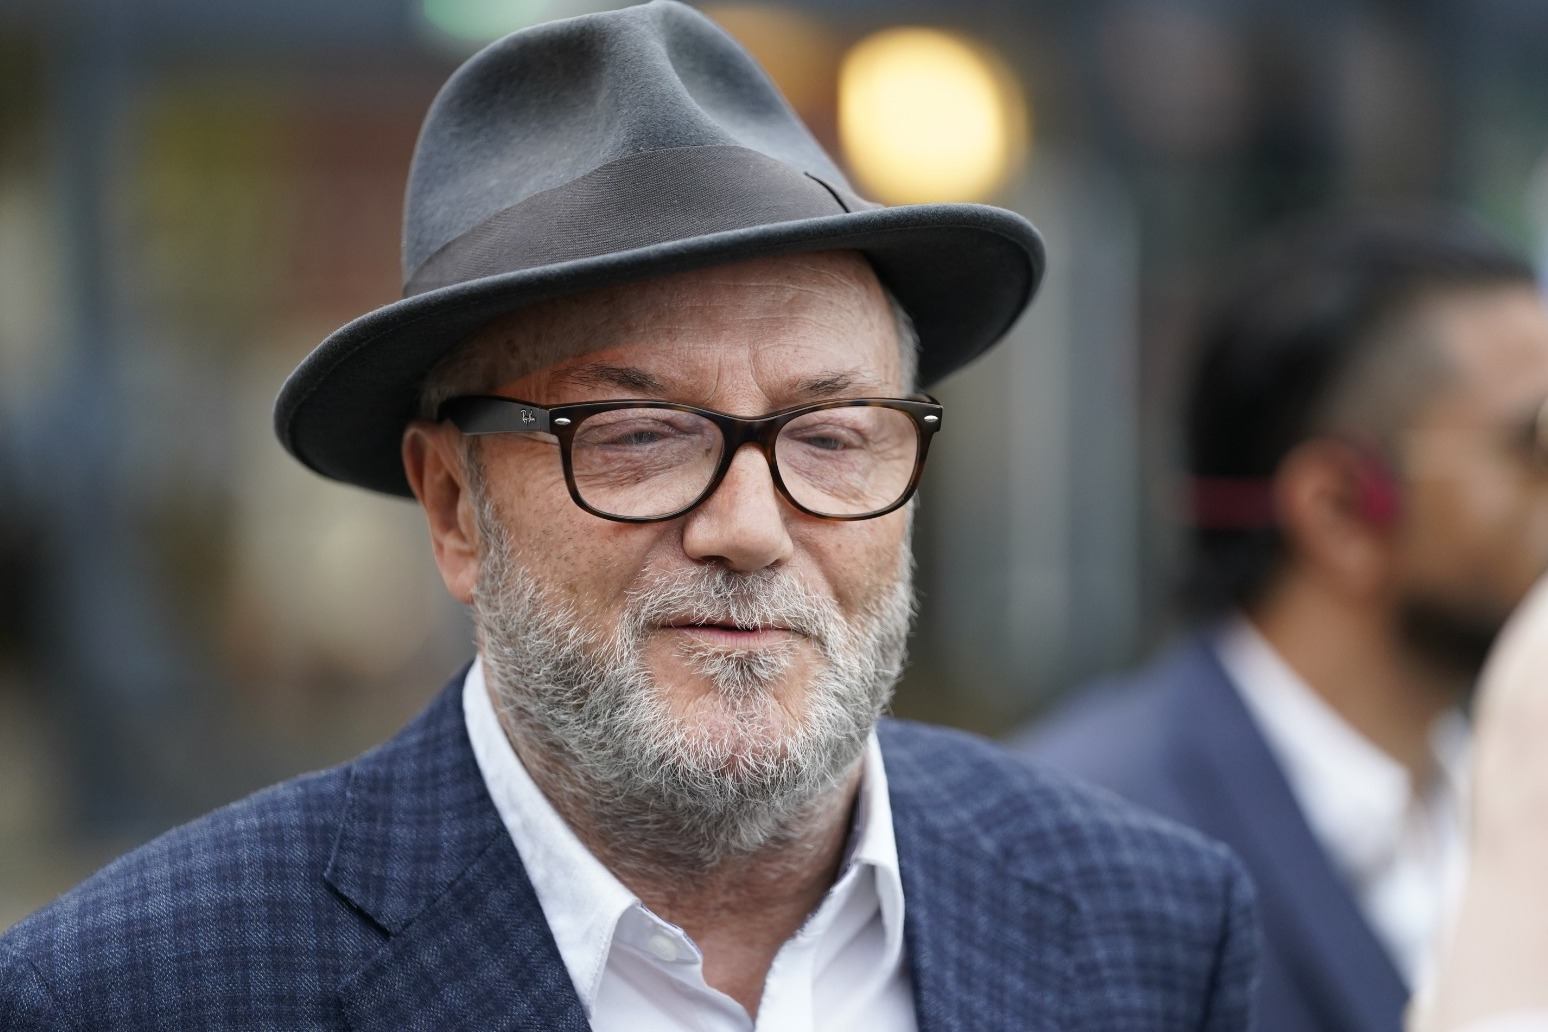 Galloway 'confident' about by-election legal challenge despite deadline passing